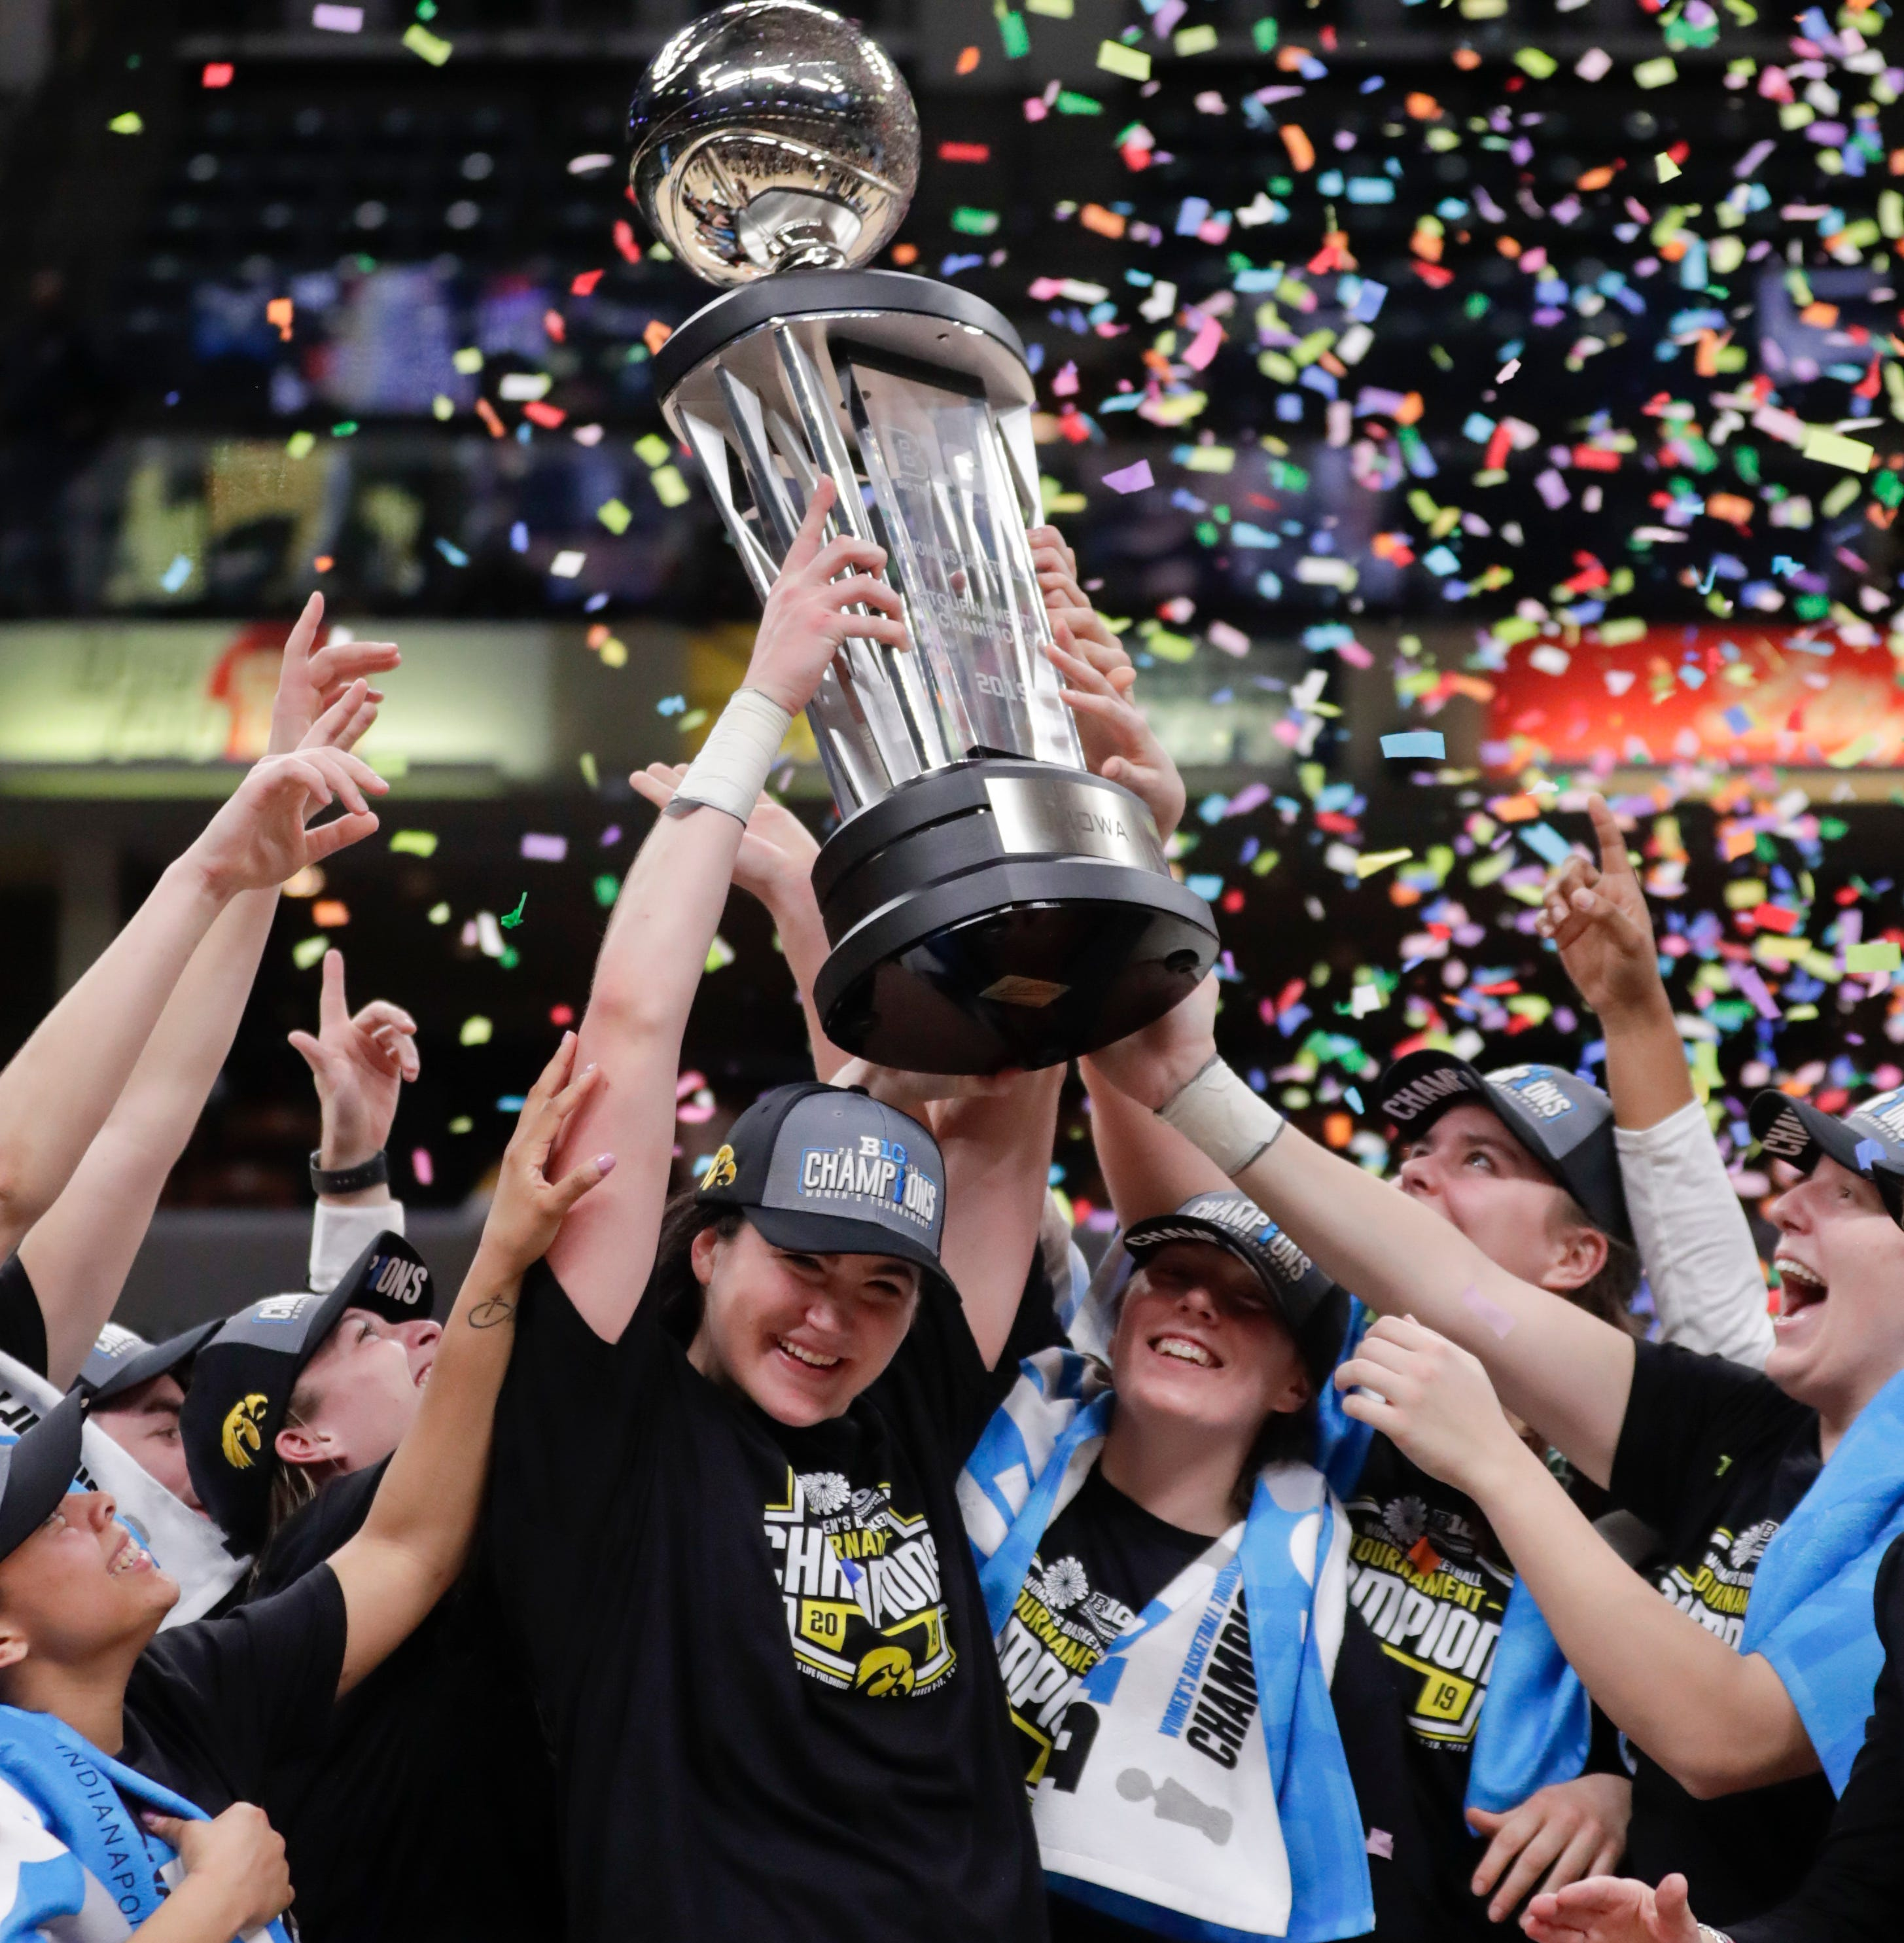 'We got the championship': Megan Gustafson's 45 lead unbreakable Hawkeyes to Big Ten title